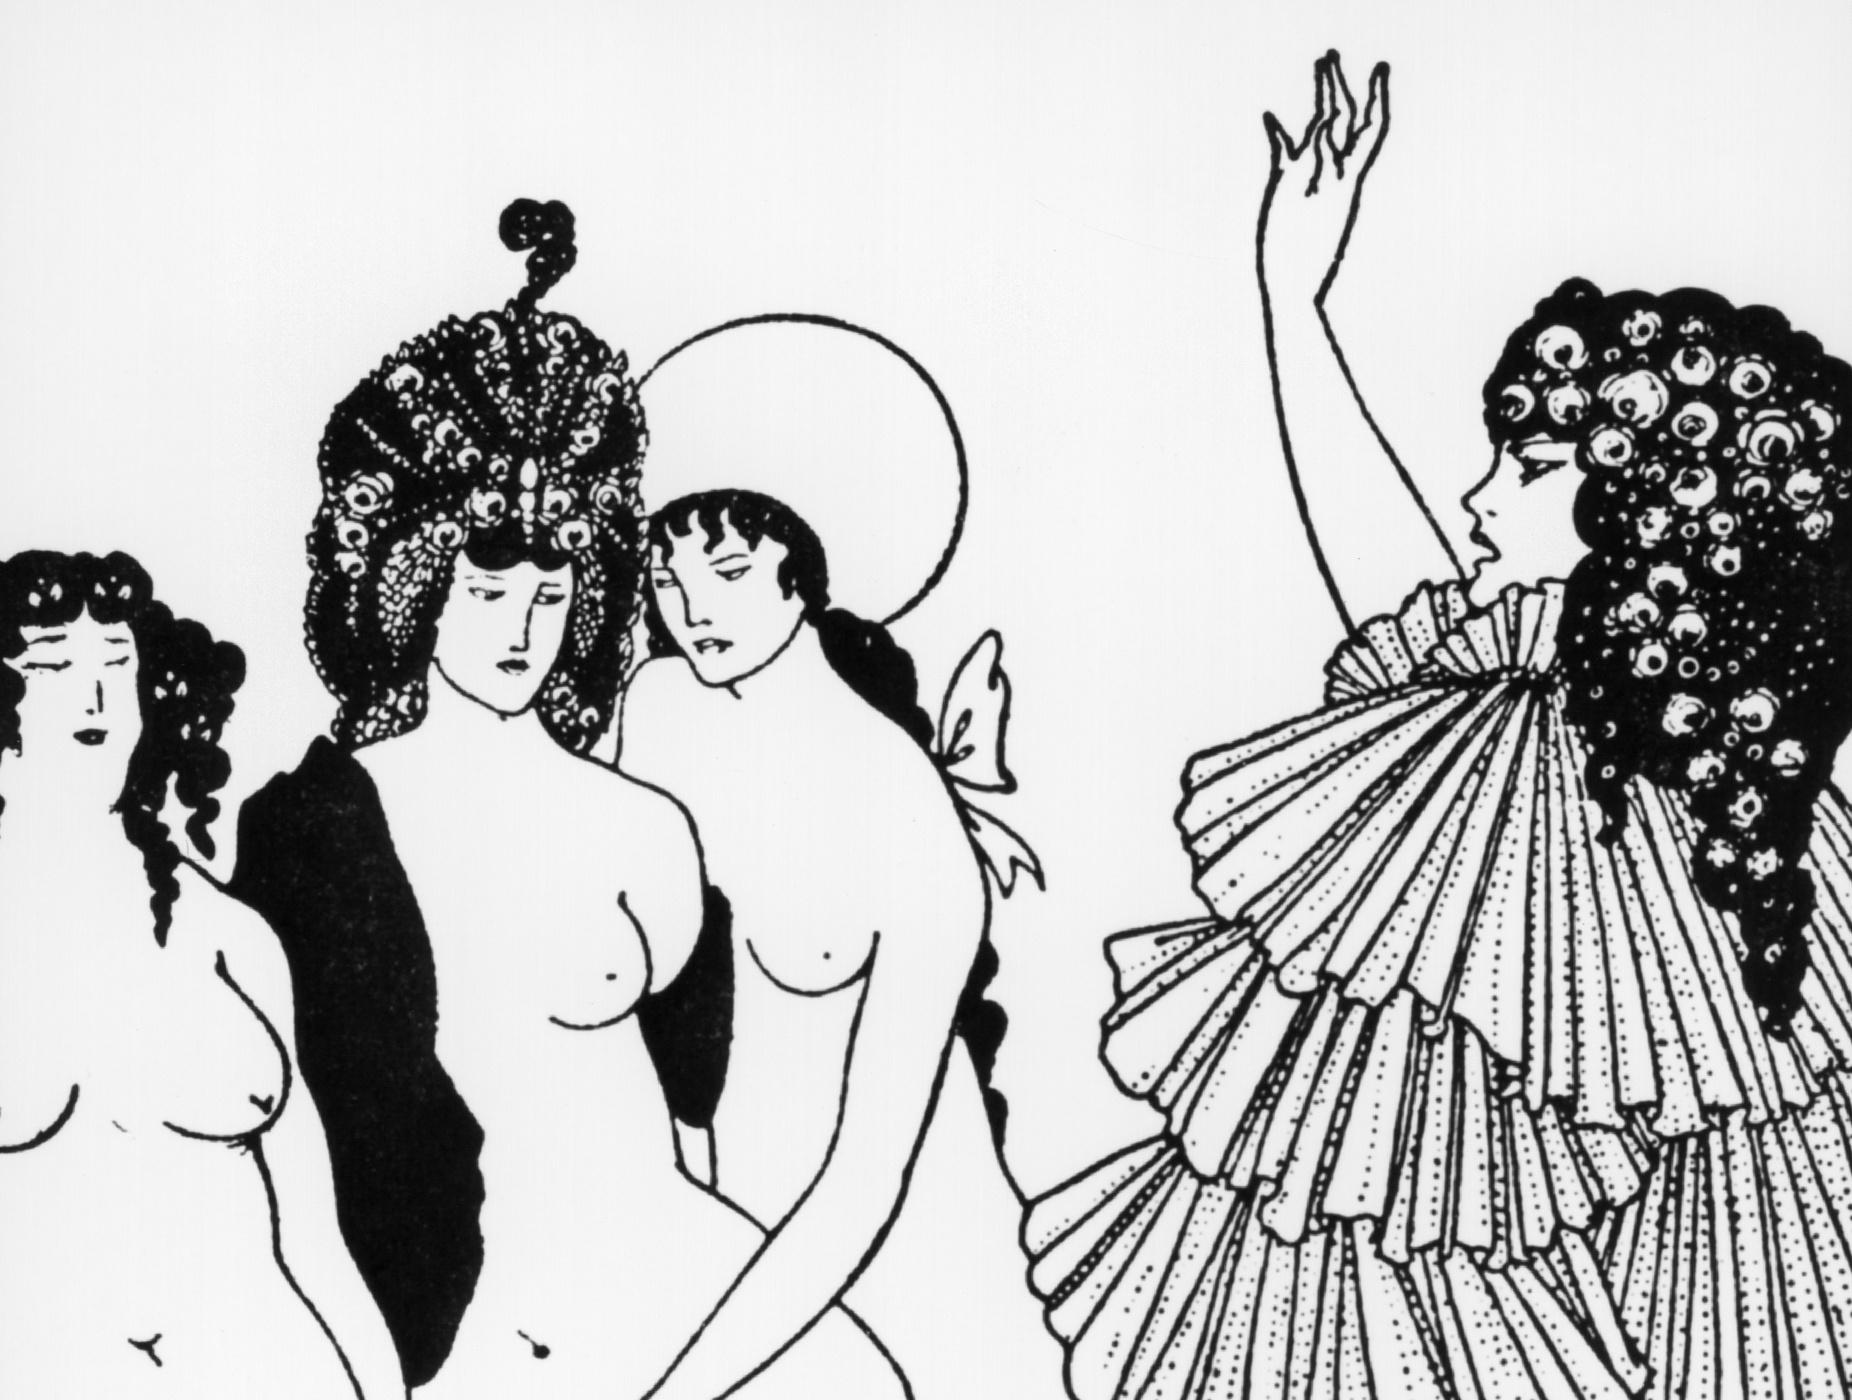 Erections, buttocks and beheadings: it's an Aubrey Beardsley blockbuster